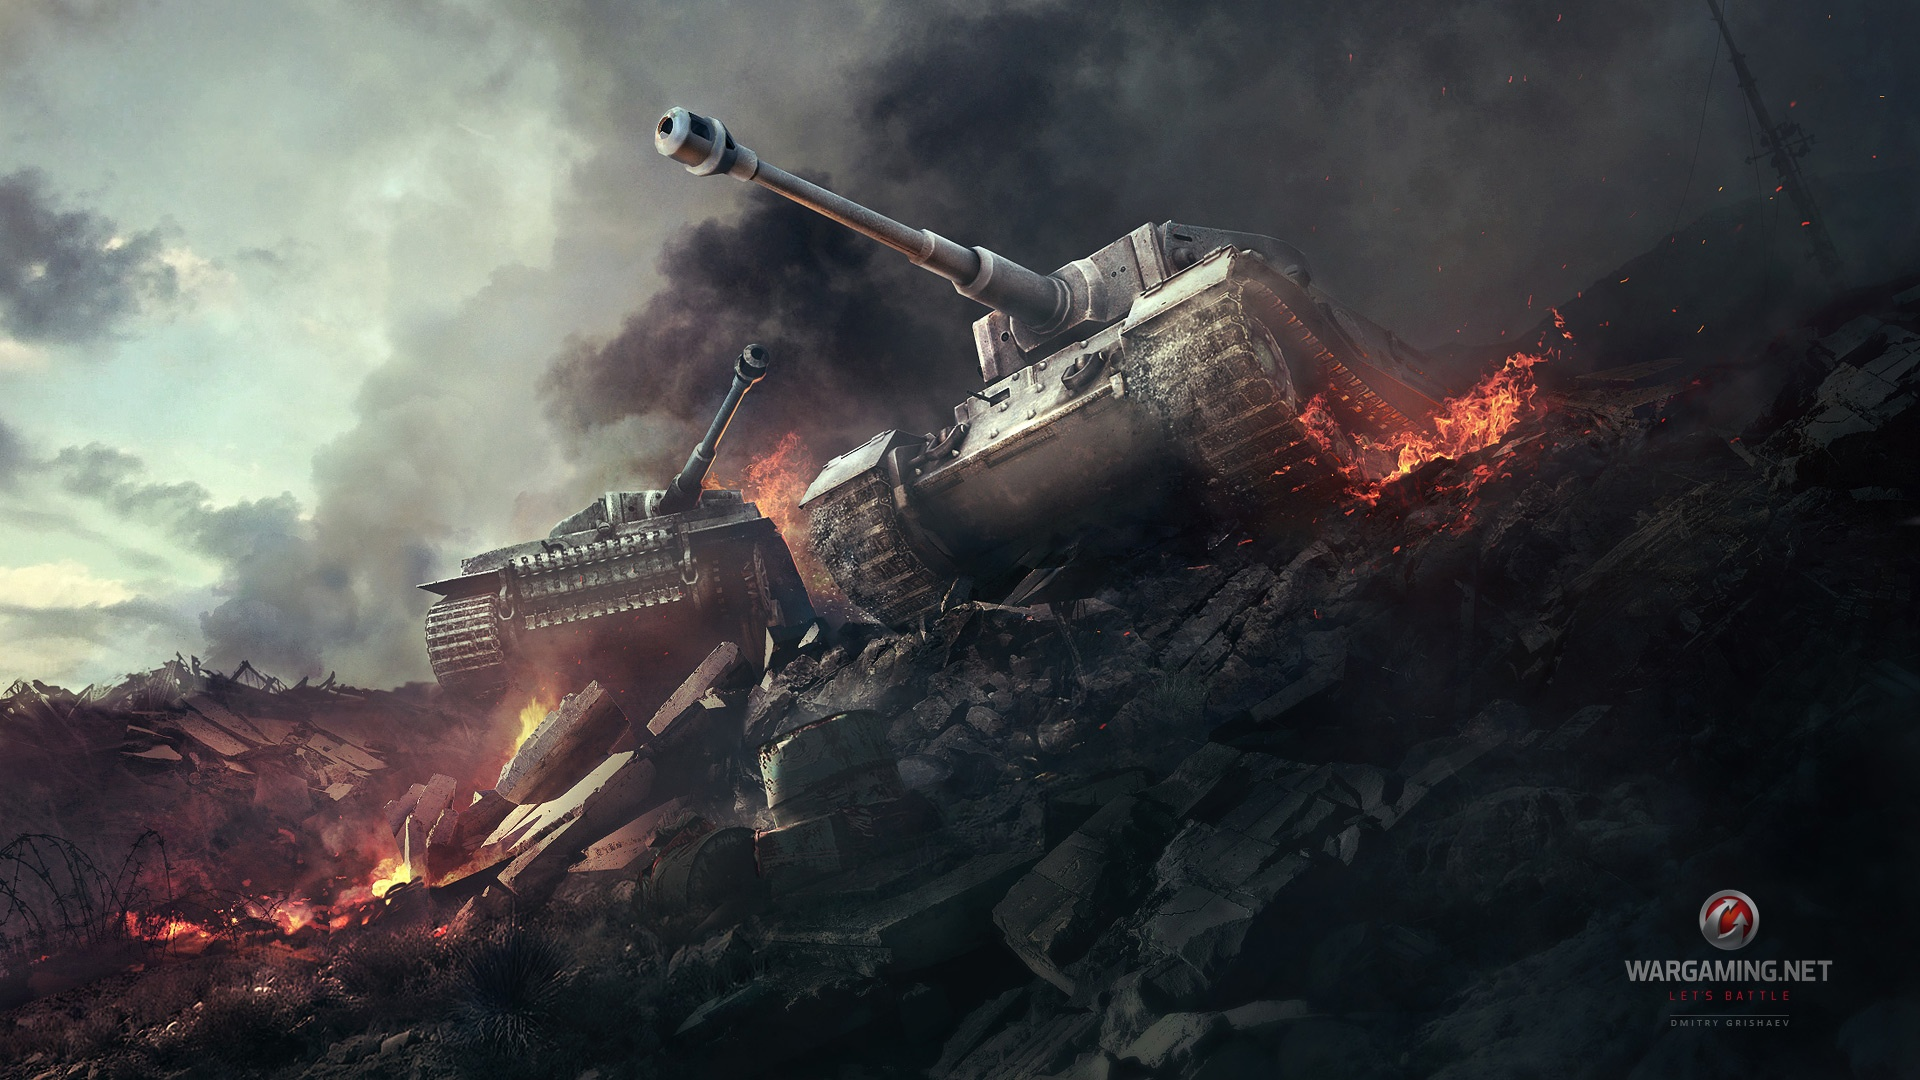 Wargaming World Of Tanks Wallpapers In Jpg Format For Free Download